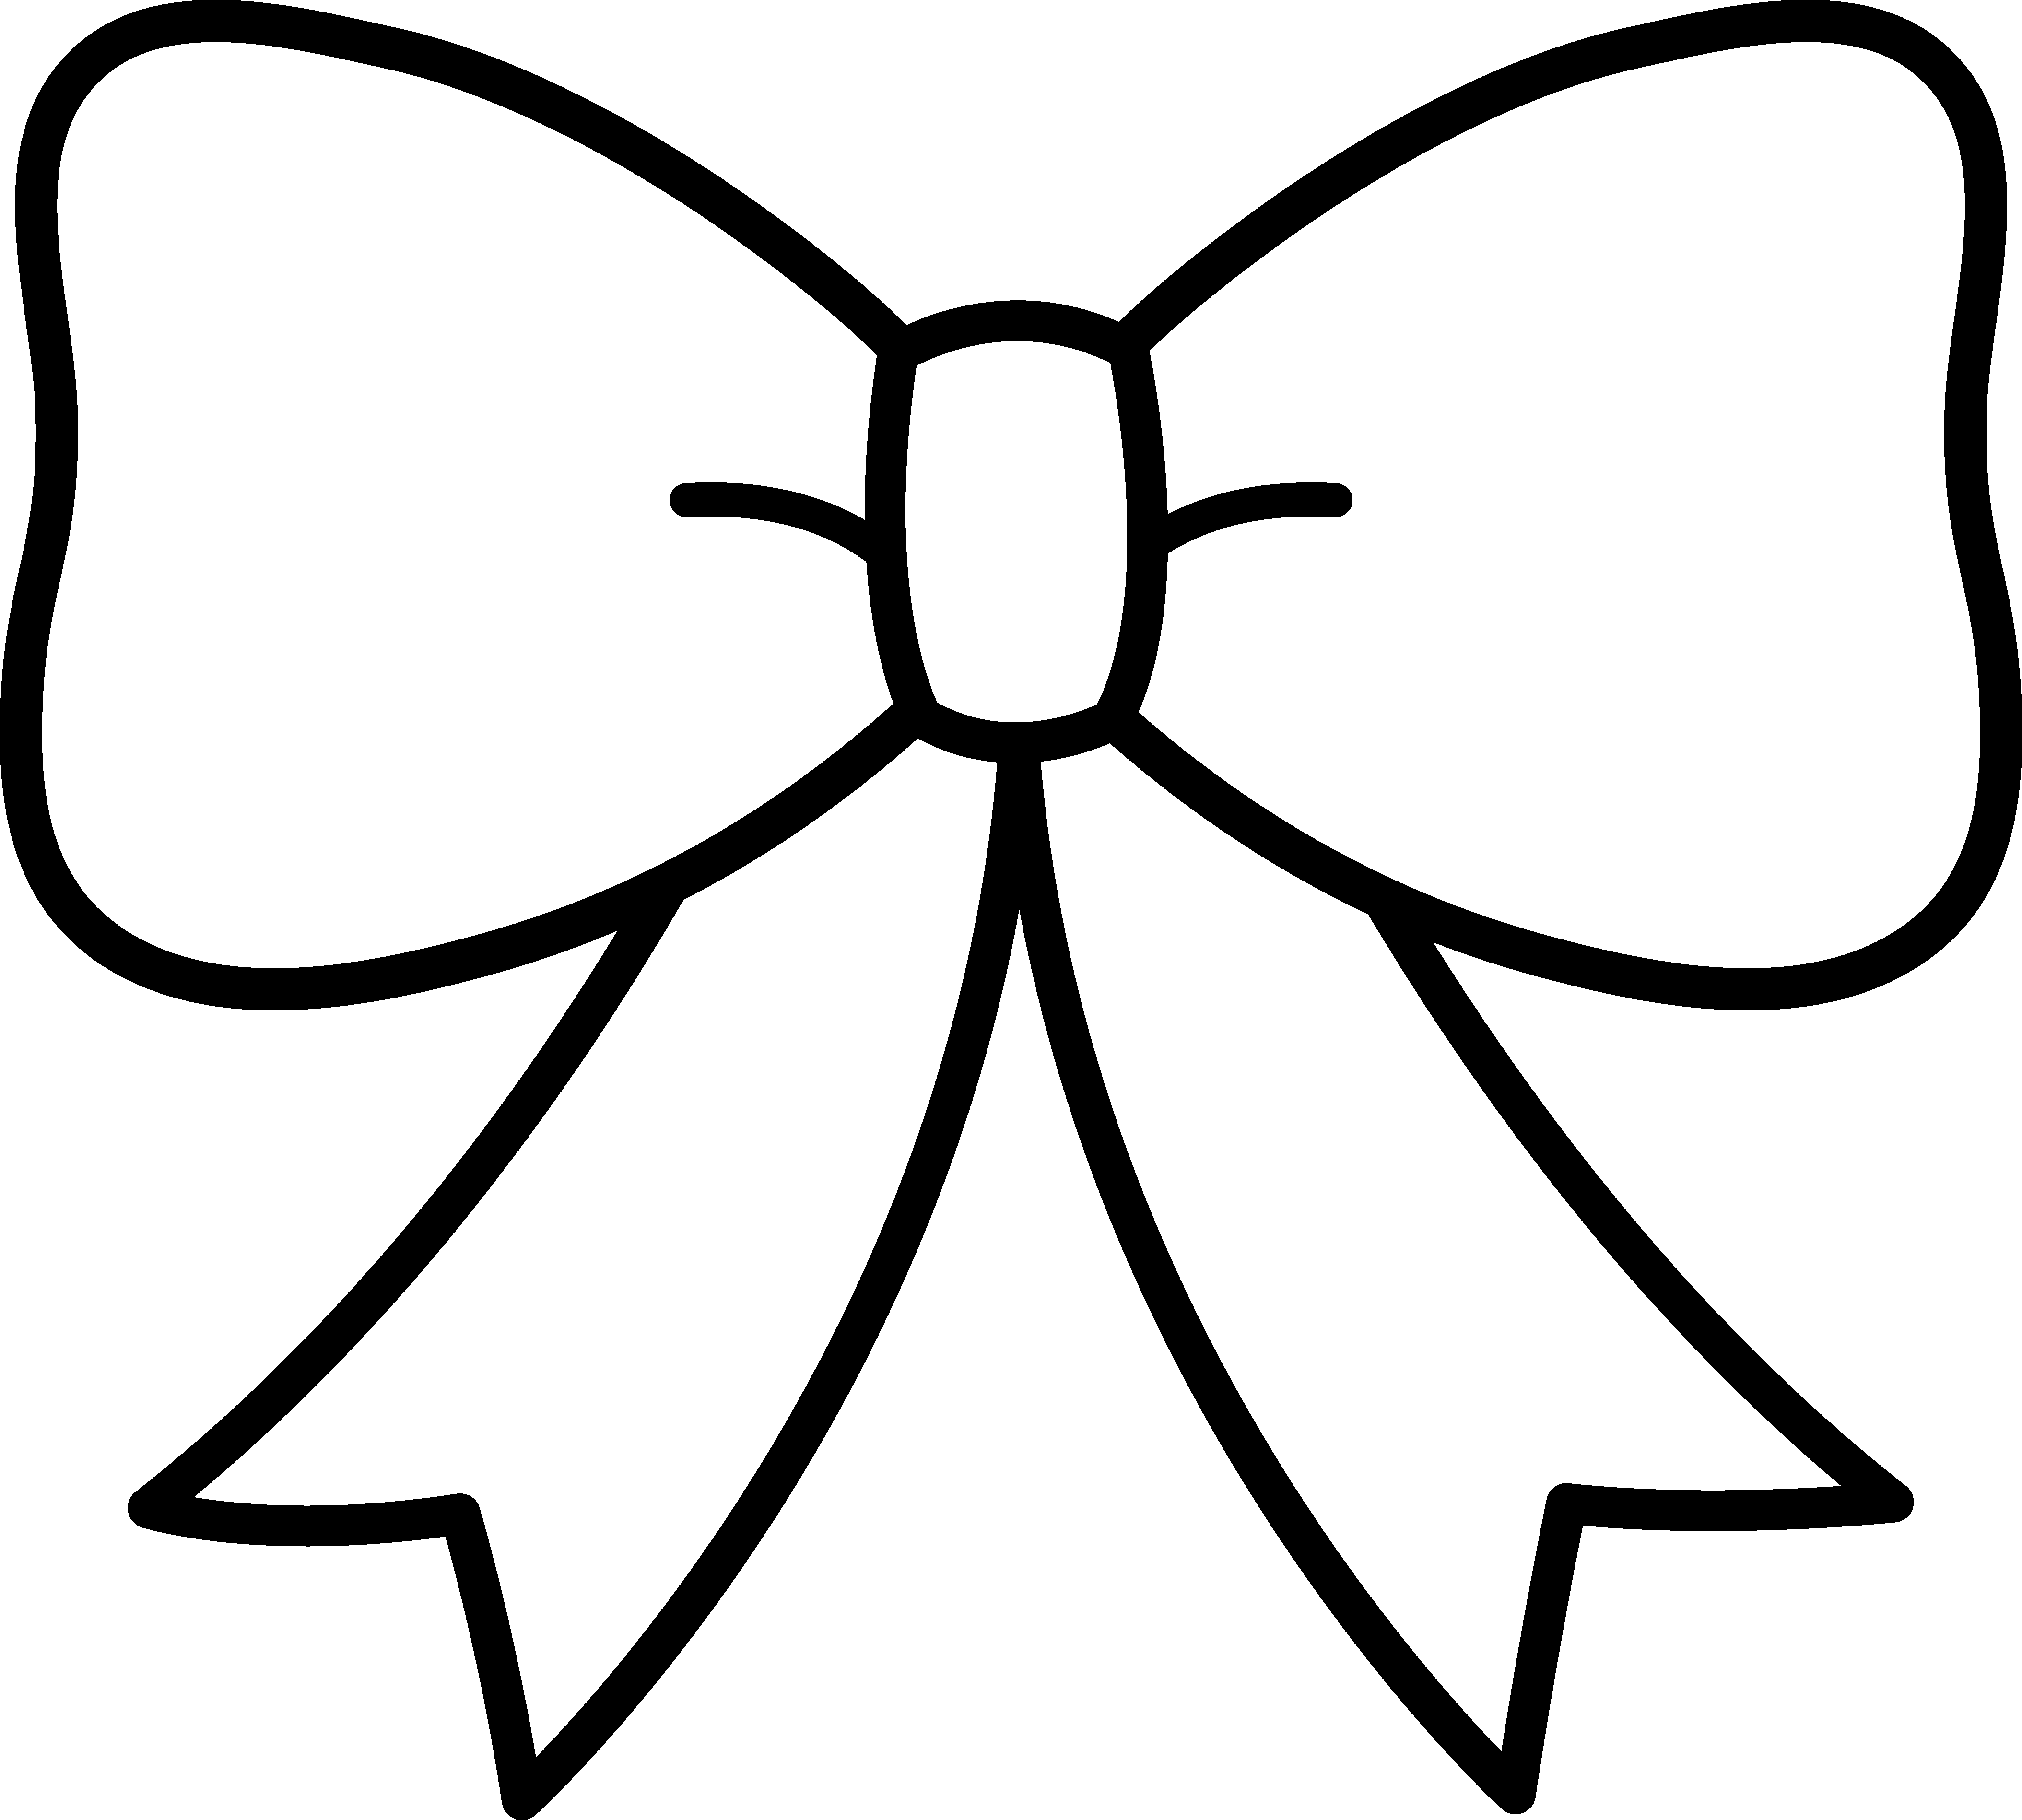 Clipart kite bow, Clipart kite bow Transparent FREE for ... png free stock